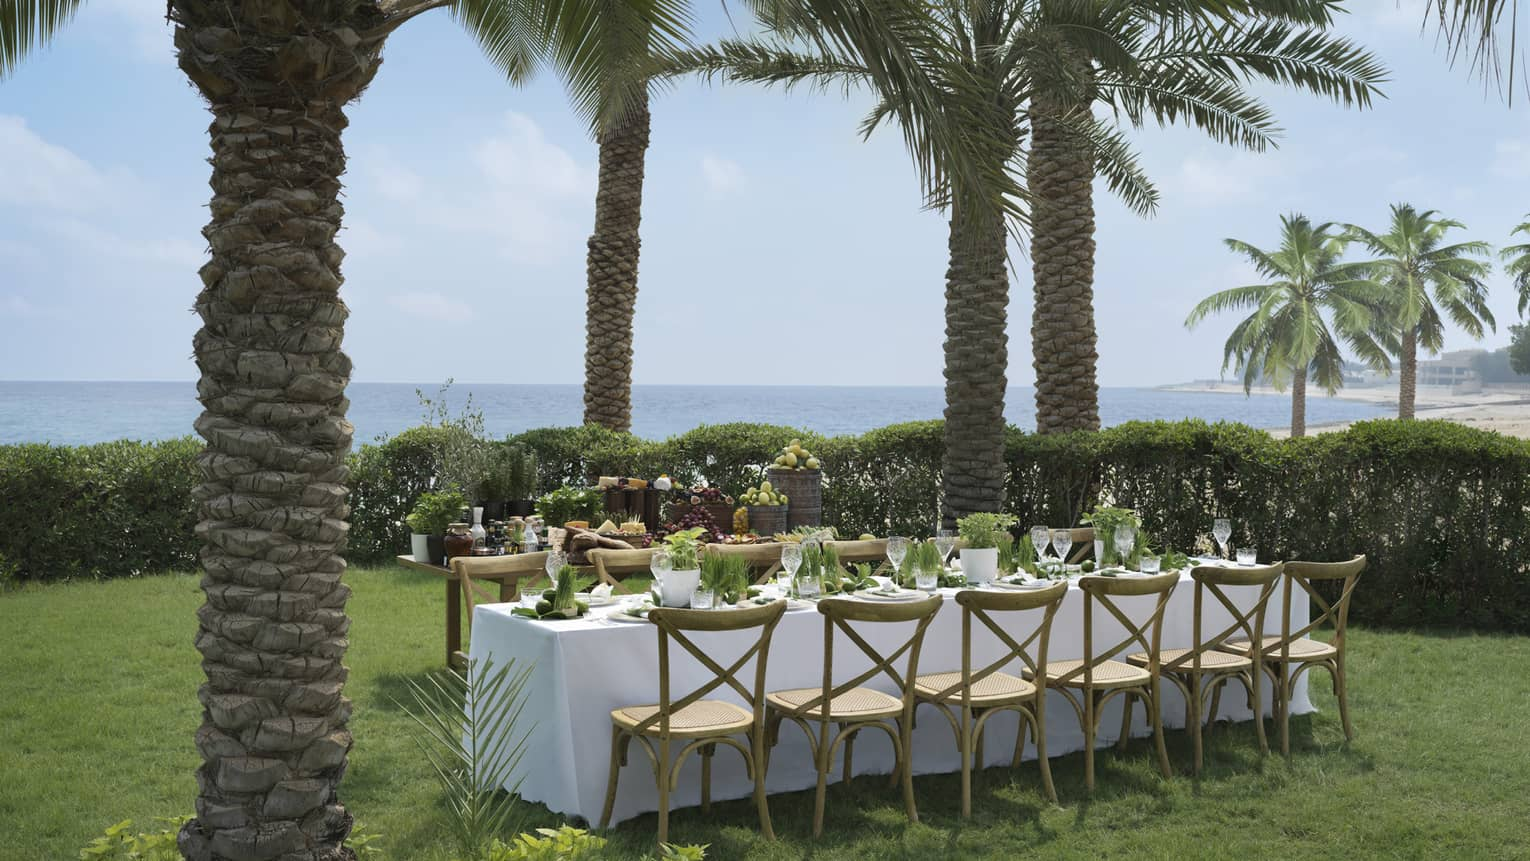 A rectangular dining table set for an event sits on the grass, under palm trees, sea in the distance